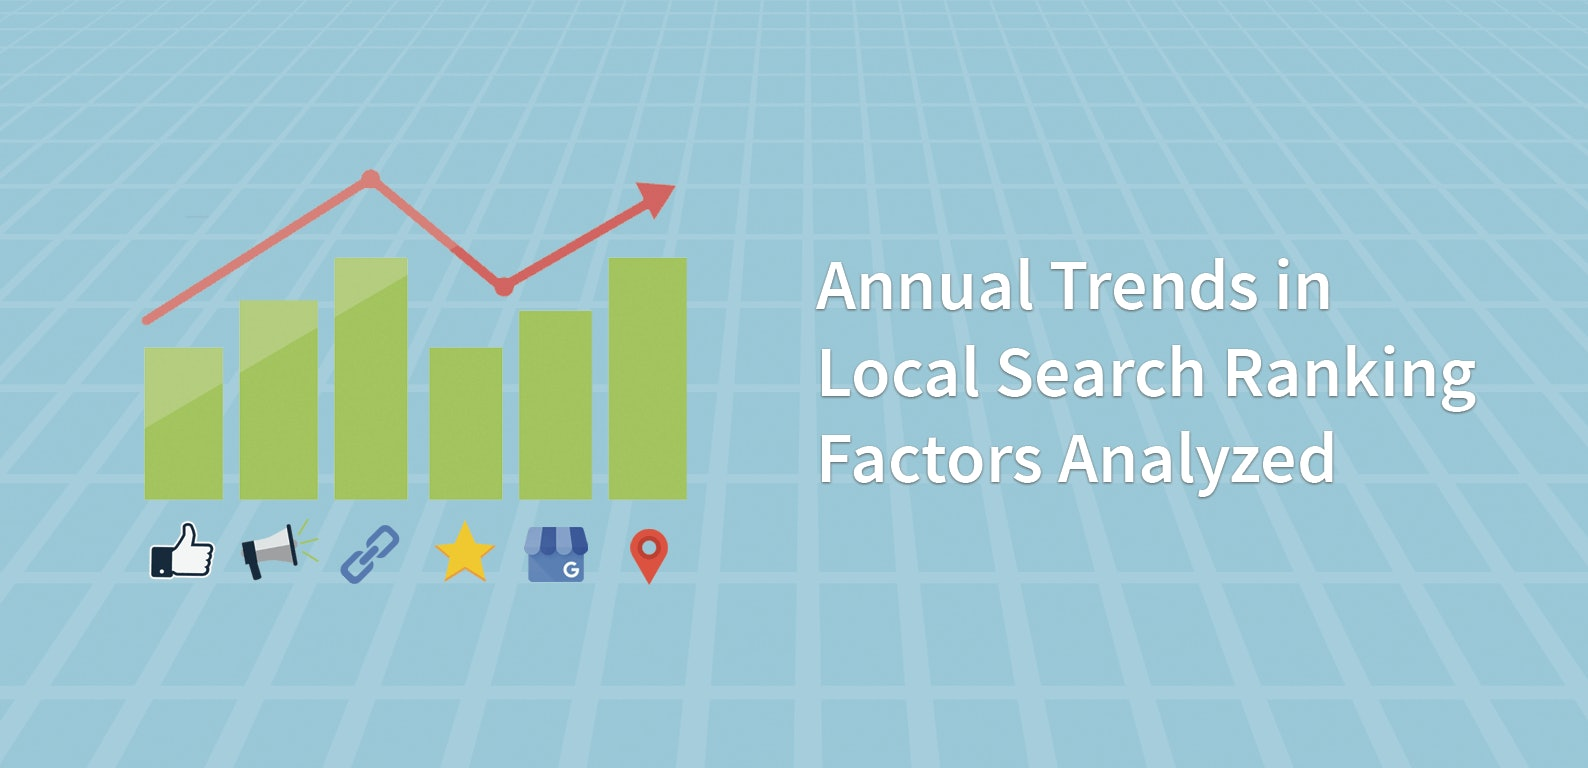 Annual Trends in Local Search Ranking Factors Analyzed